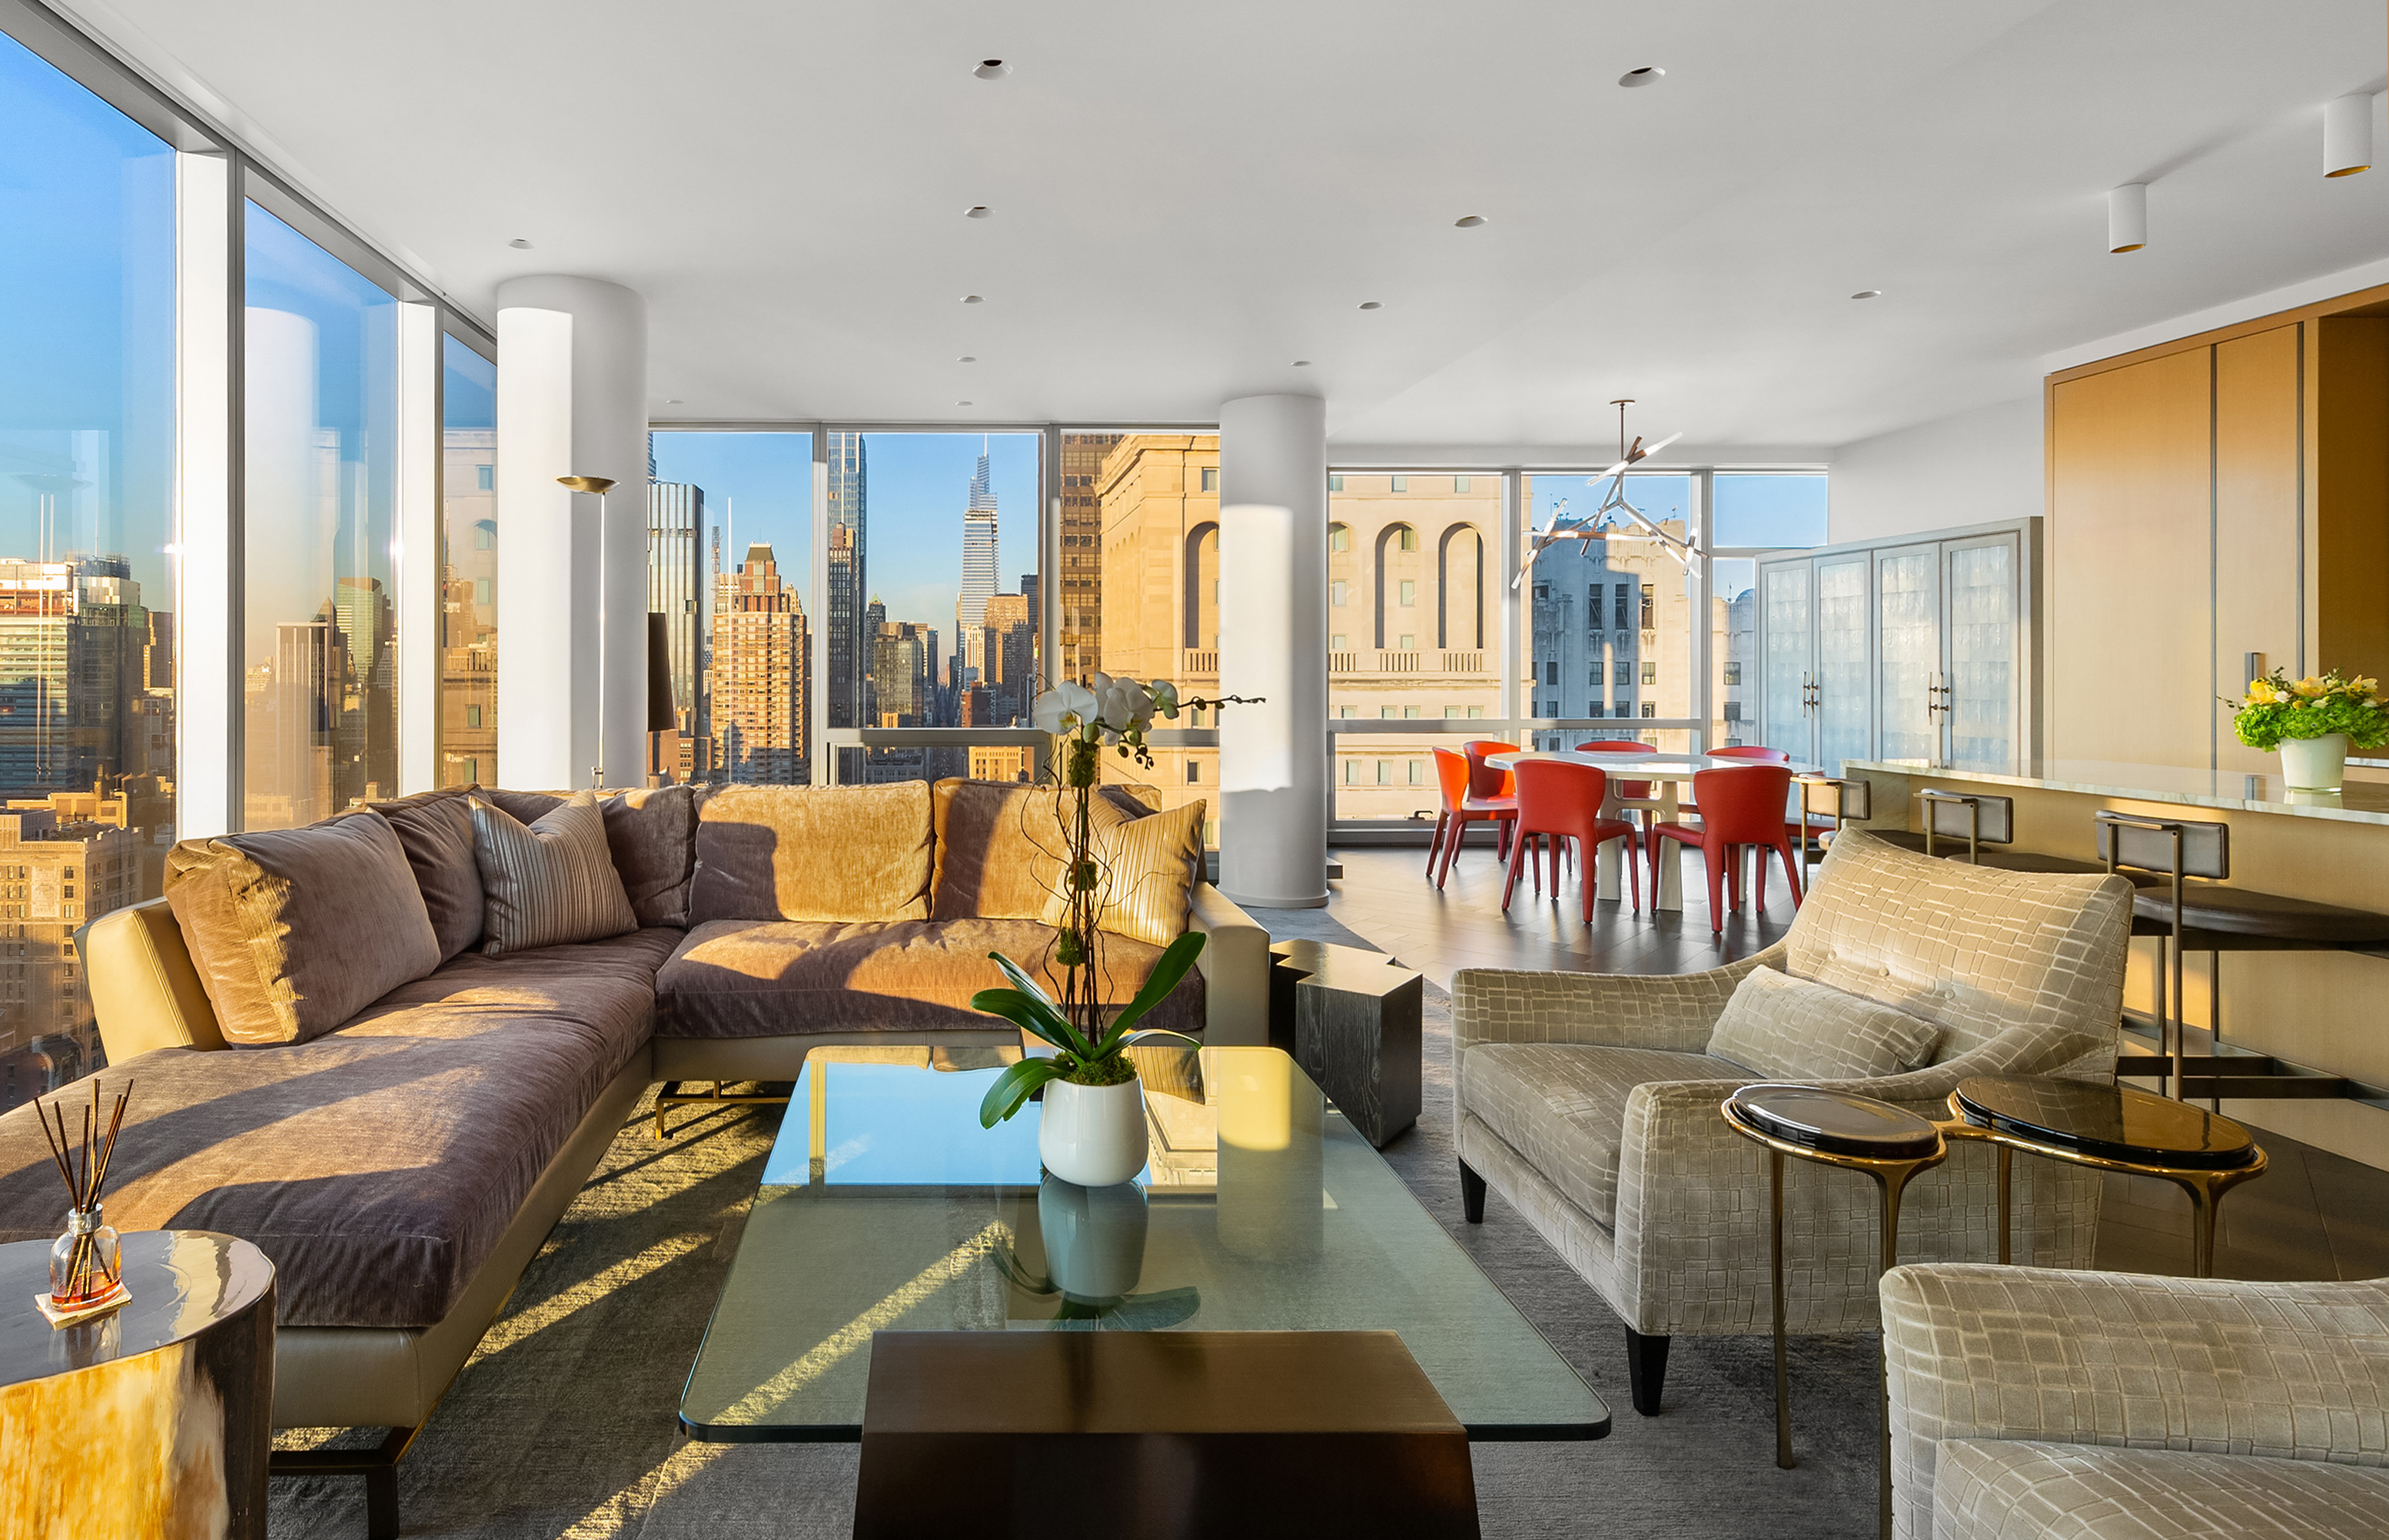 With unparalleled, 360o city views, this spectacular 3,310 sq.ft, four bedroom, four bathroom home occupies the entire 41st floor of the iconic One Madison condominium.  Unencumbered sunrise and sunset views of the Empire State Building, Madison Square Park, the Hudson River and beyond await you, thanks to massive, floor-to-ceiling windows and 11-foot ceilings in every room. An exquisitely designed interior by Yabu-Pushelberg and unmatched attention to detail make this a rare, not-to-be-missed opportunity.   Access the residence by a security-keyed elevator into the private foyer. Entertain in style in the sprawling, light-filled great room with north and west exposures, featuring contemporary touches like architectural columns and bespoke 9-inch quarter sawn oak flooring.  The open chef's kitchen features a Borghini Calacatta marble island with seating, a pull-out pantry, custom cabinetry and a complete suite of fully-integrated, top-of-the-line Gaggenau and SubZero appliances.    The lavish master suite sits in its own corner and offers beautiful panoramic views.  It includes an extraordinary walk-in closet and a spa-like marble bath boasting a free-standing soaking tub, separate glass-enclosed shower and a private water closet, all overlooking the Met Life Clock-Tower.   The three additional bedrooms are equally well-apportioned and also boast walls of windows and generous, custom-designed closet space. Two of the three bedrooms have en-suite marble baths with radiant heat floors.    This exceptional home features state of the art technology including motorized solar shades and a customizable Control4 Smart Home System.  Storage unit is available for purchase.    The Cetra-Ruddy designed One Madison, a 60-story luxury condominium situated at the nexus of the city's most charismatic and vibrant neighborhoods: Flatiron, Gramercy and NoMad. One Madison offers unparalleled services and extensive amenities that include a full-time doorman and concierge, great room wit